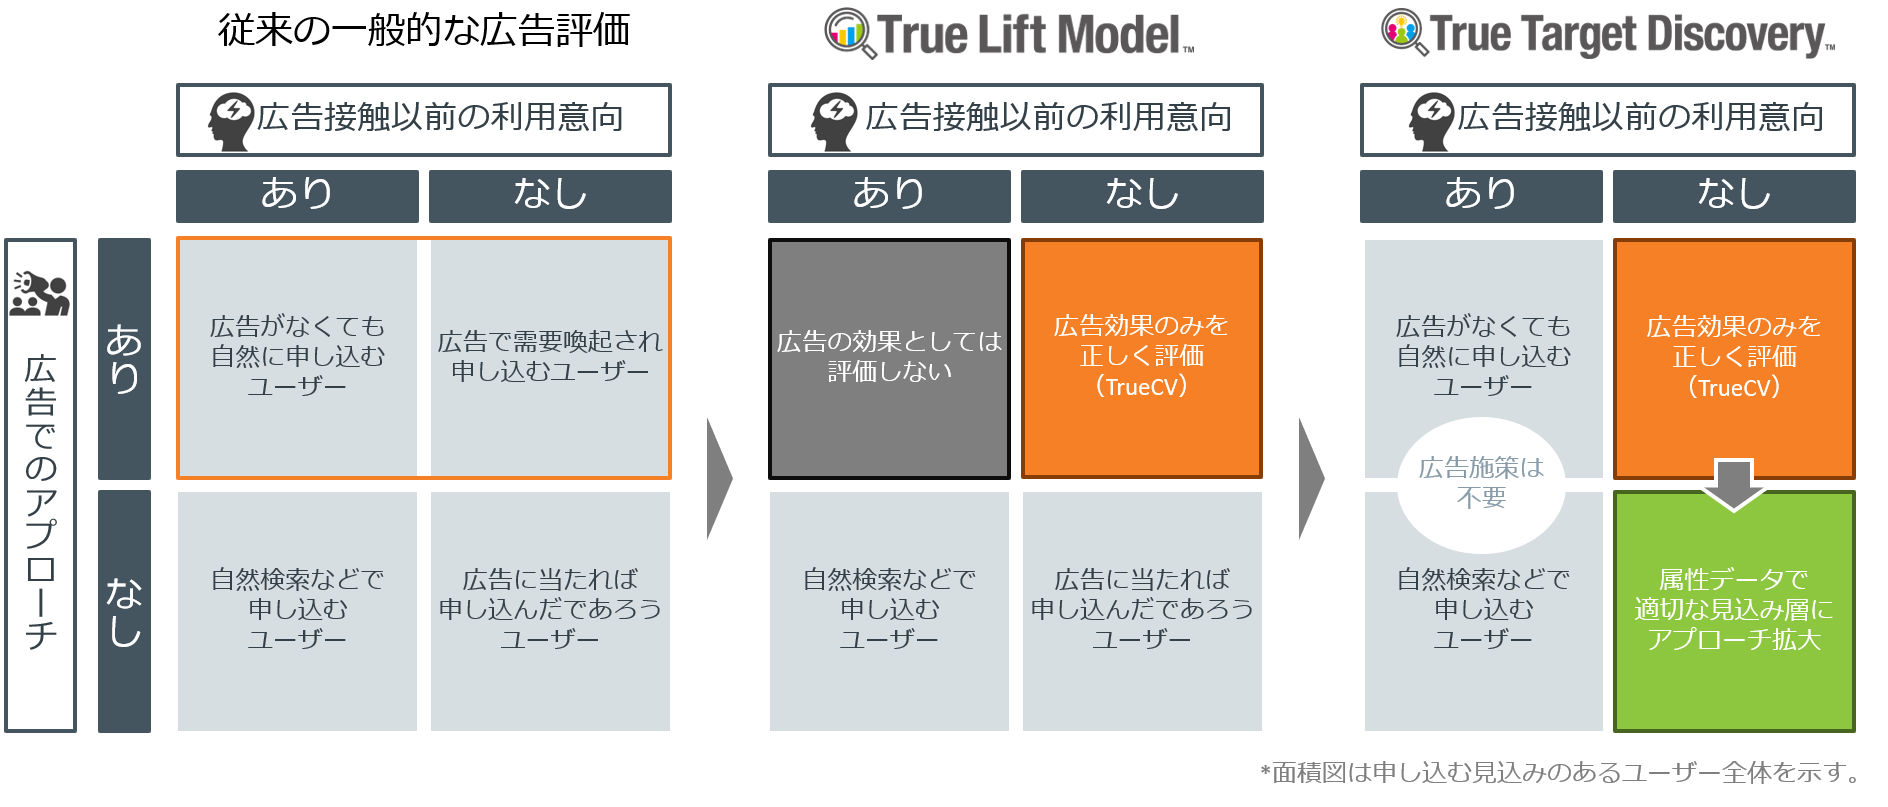 True Target Discovery_flow